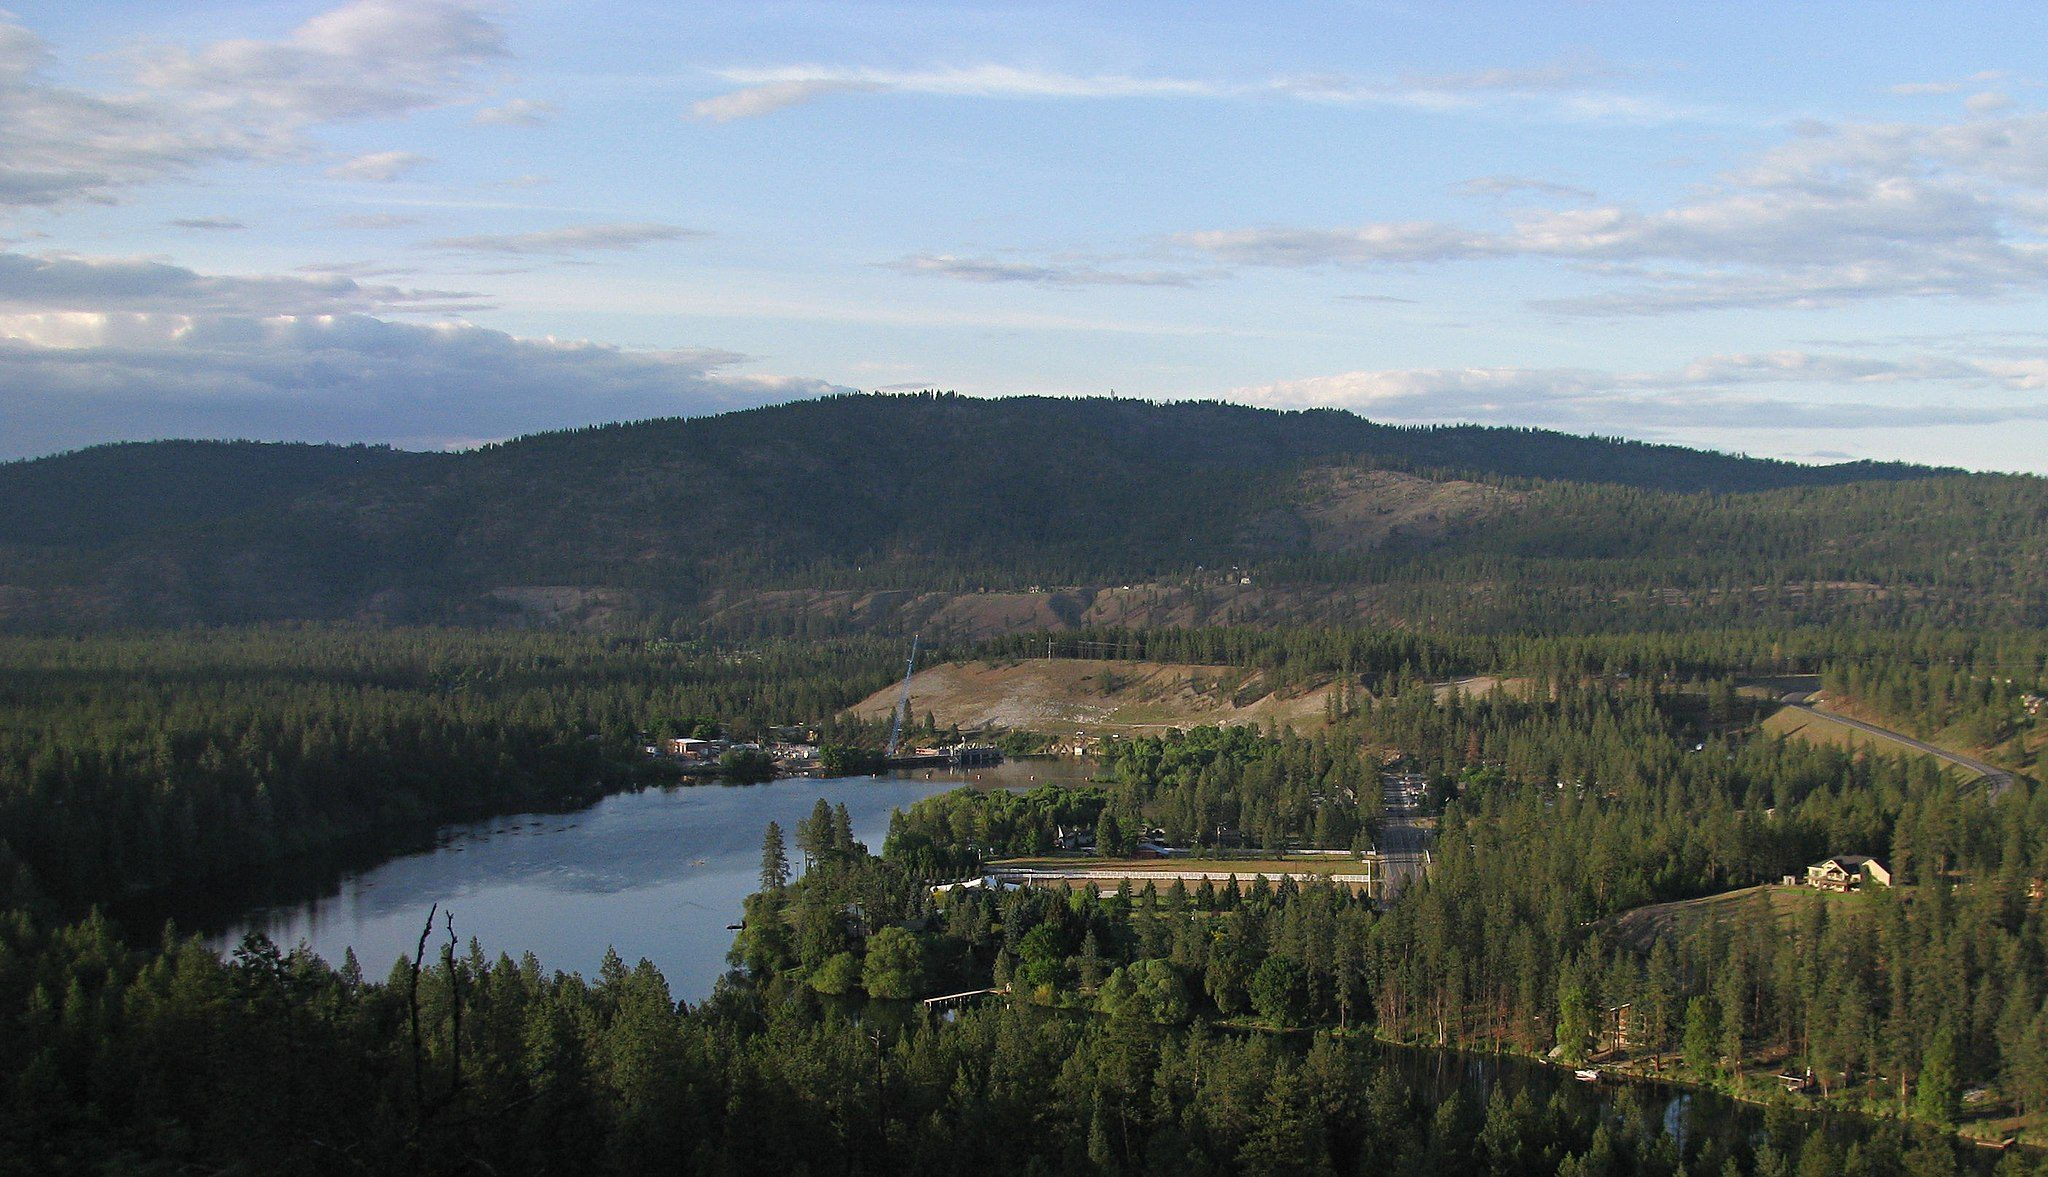 Nine Mile Falls, Washington, tops the list of cities with the fastest internet speeds.